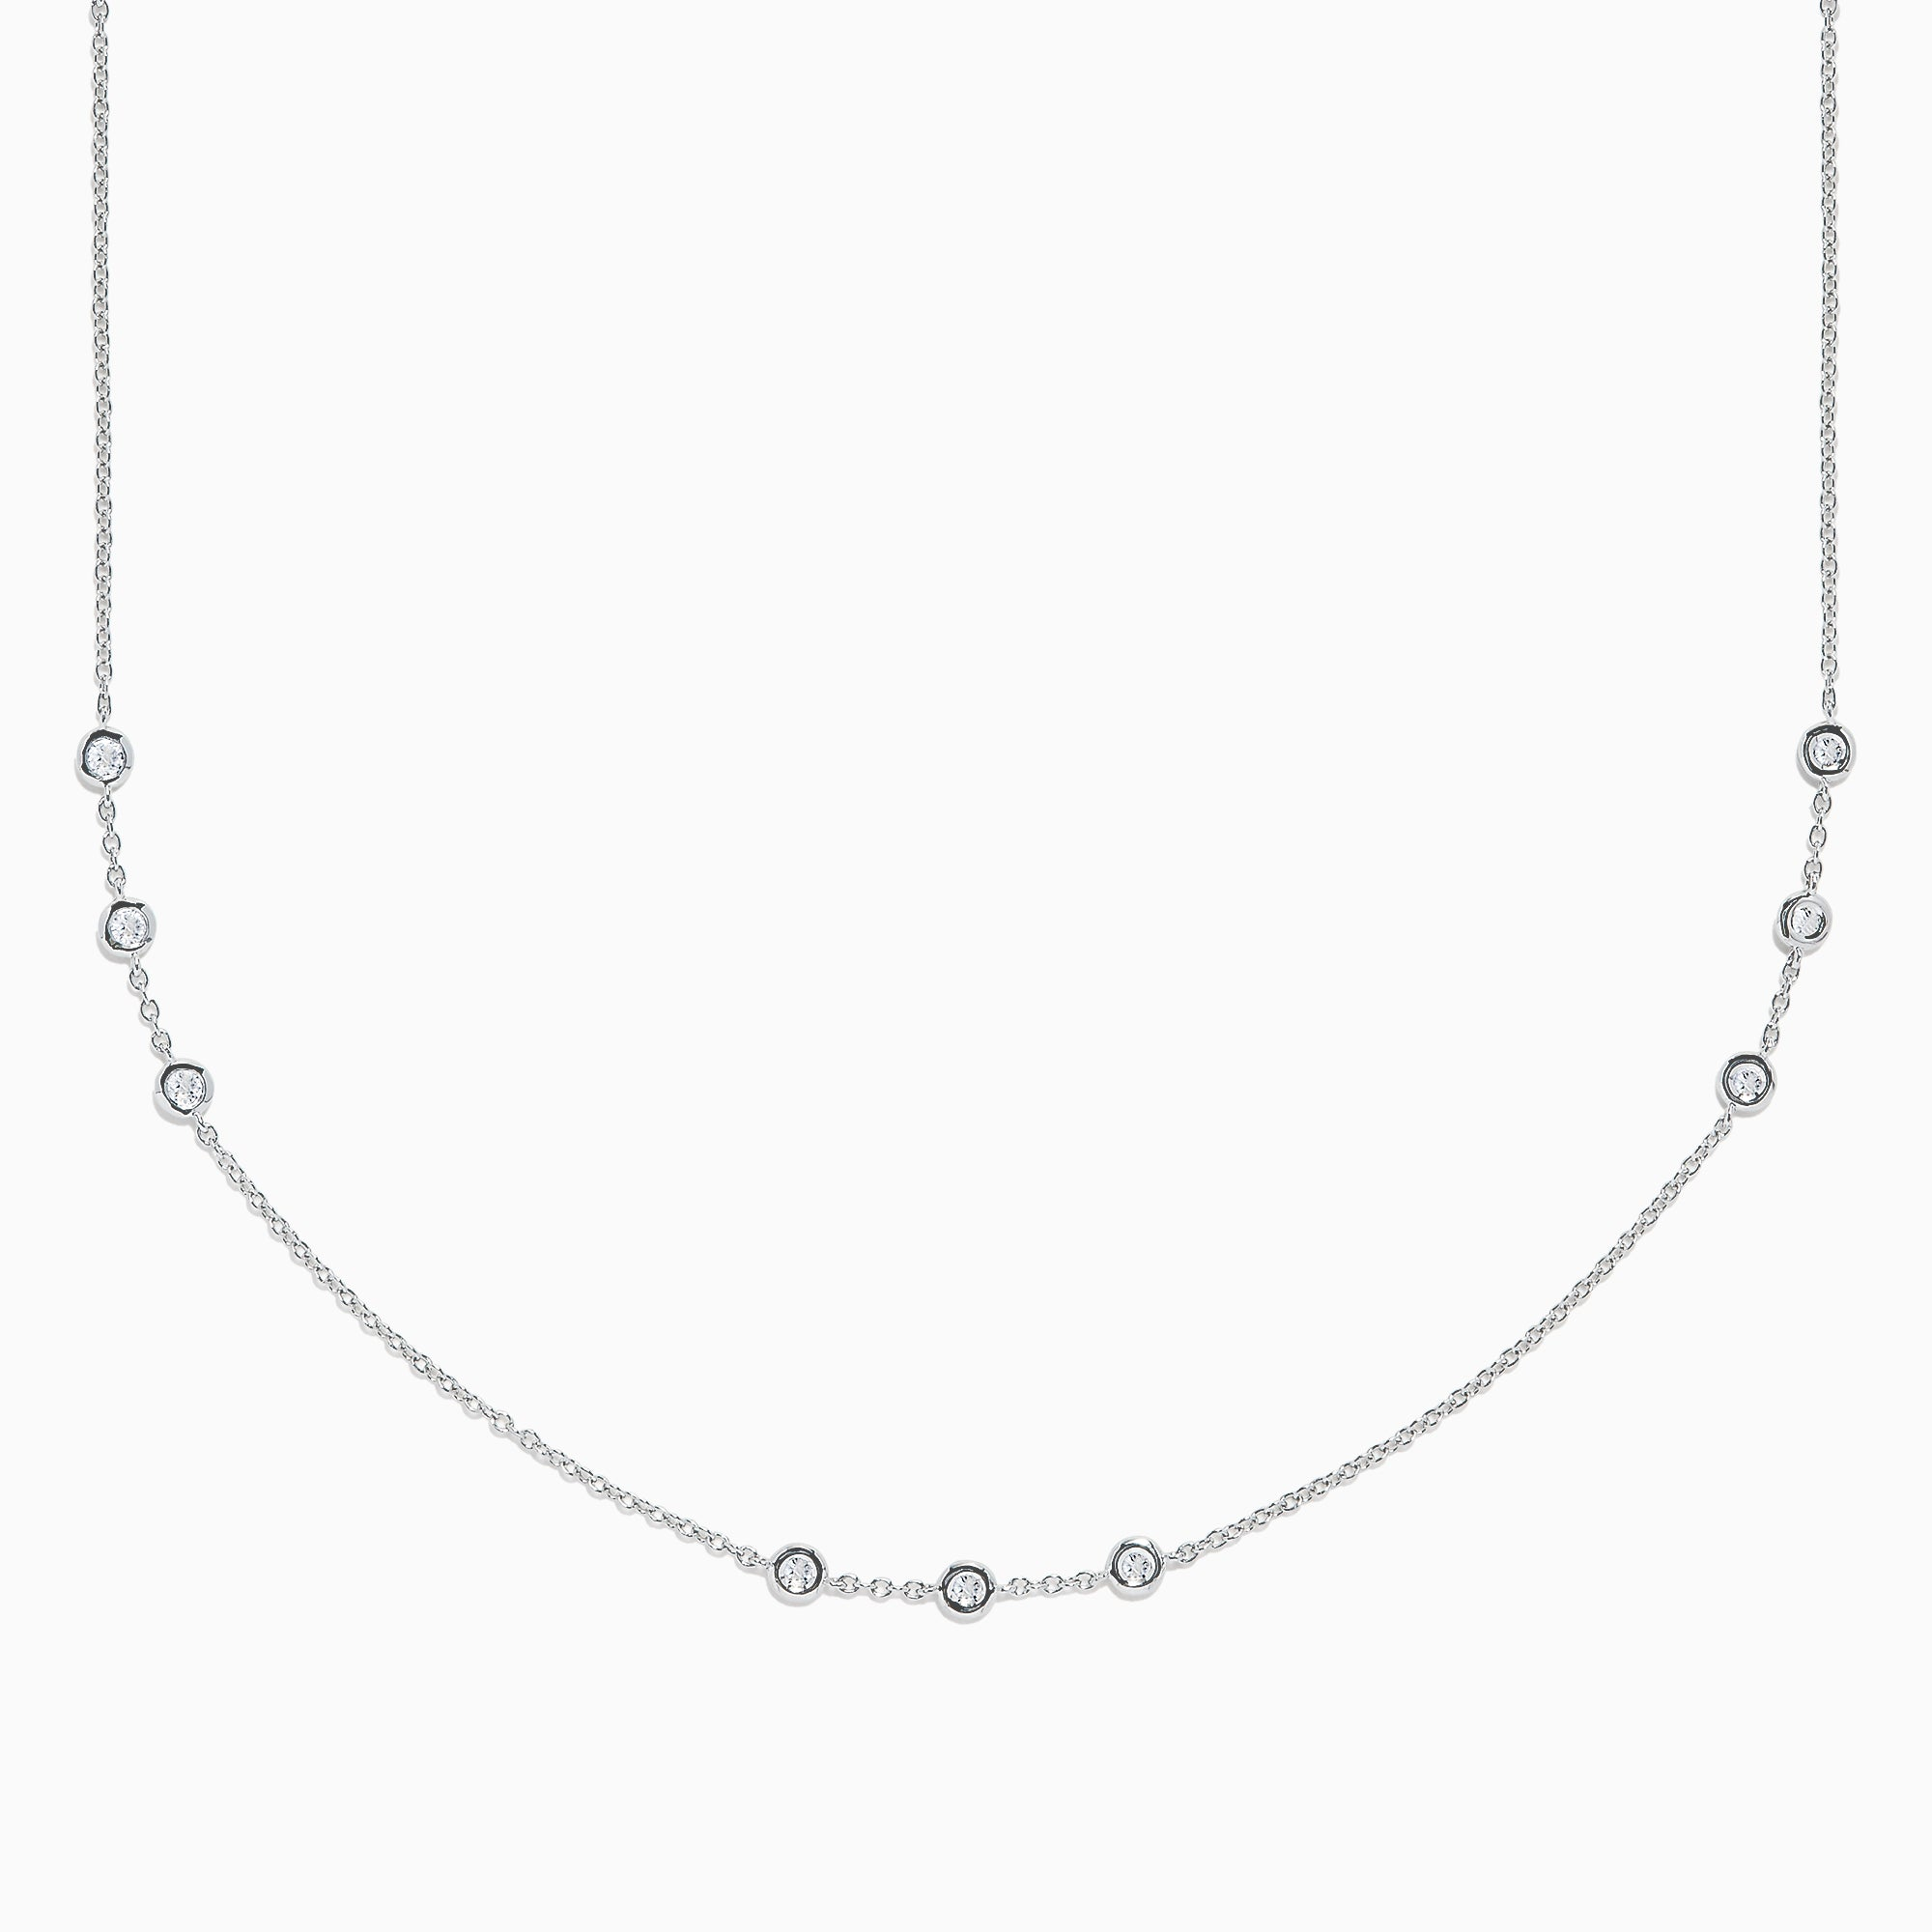 "Effy Pave Classica 14K White Gold 16"" Diamond Station Necklace, 0.59 TCW"